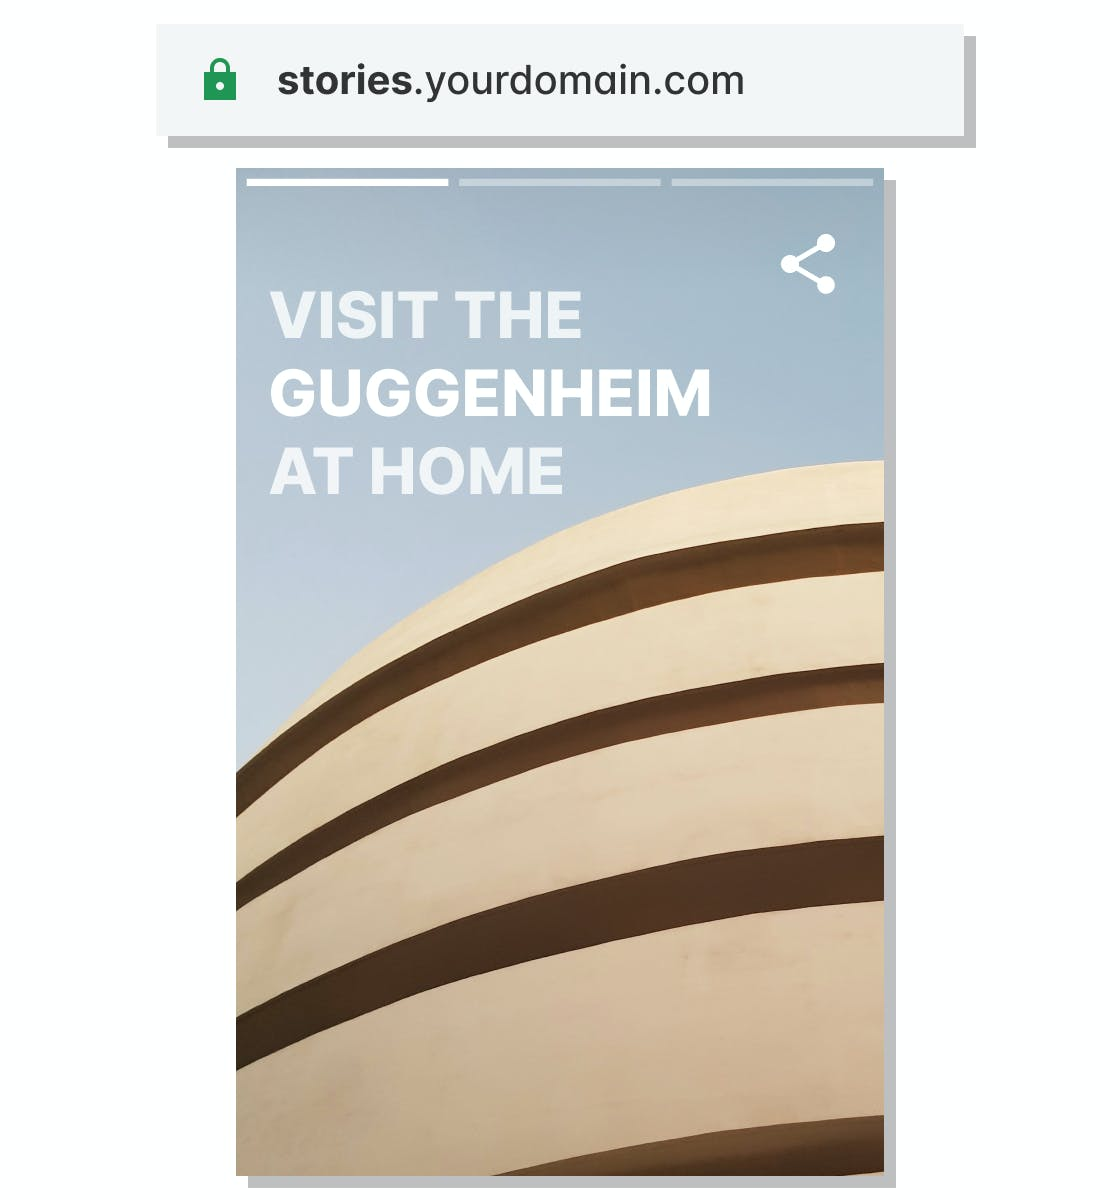 Composition of a cover page of a web story with a navigation bar